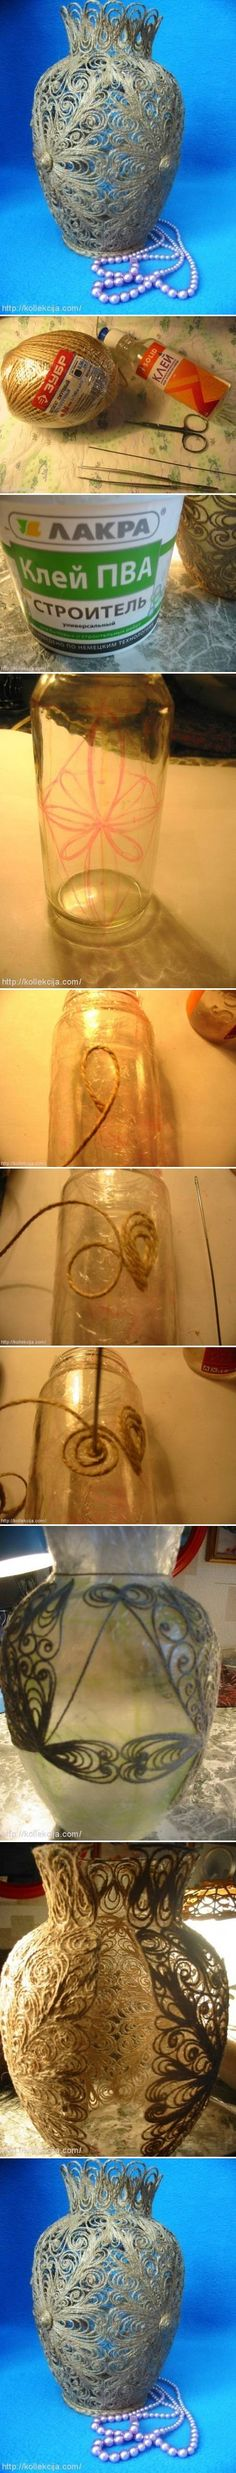 DIY Delicate Twine Cord Vase | www.FabArtDIY.com LIKE Us on Facebook ==> https://www.facebook.com/FabArtDIY